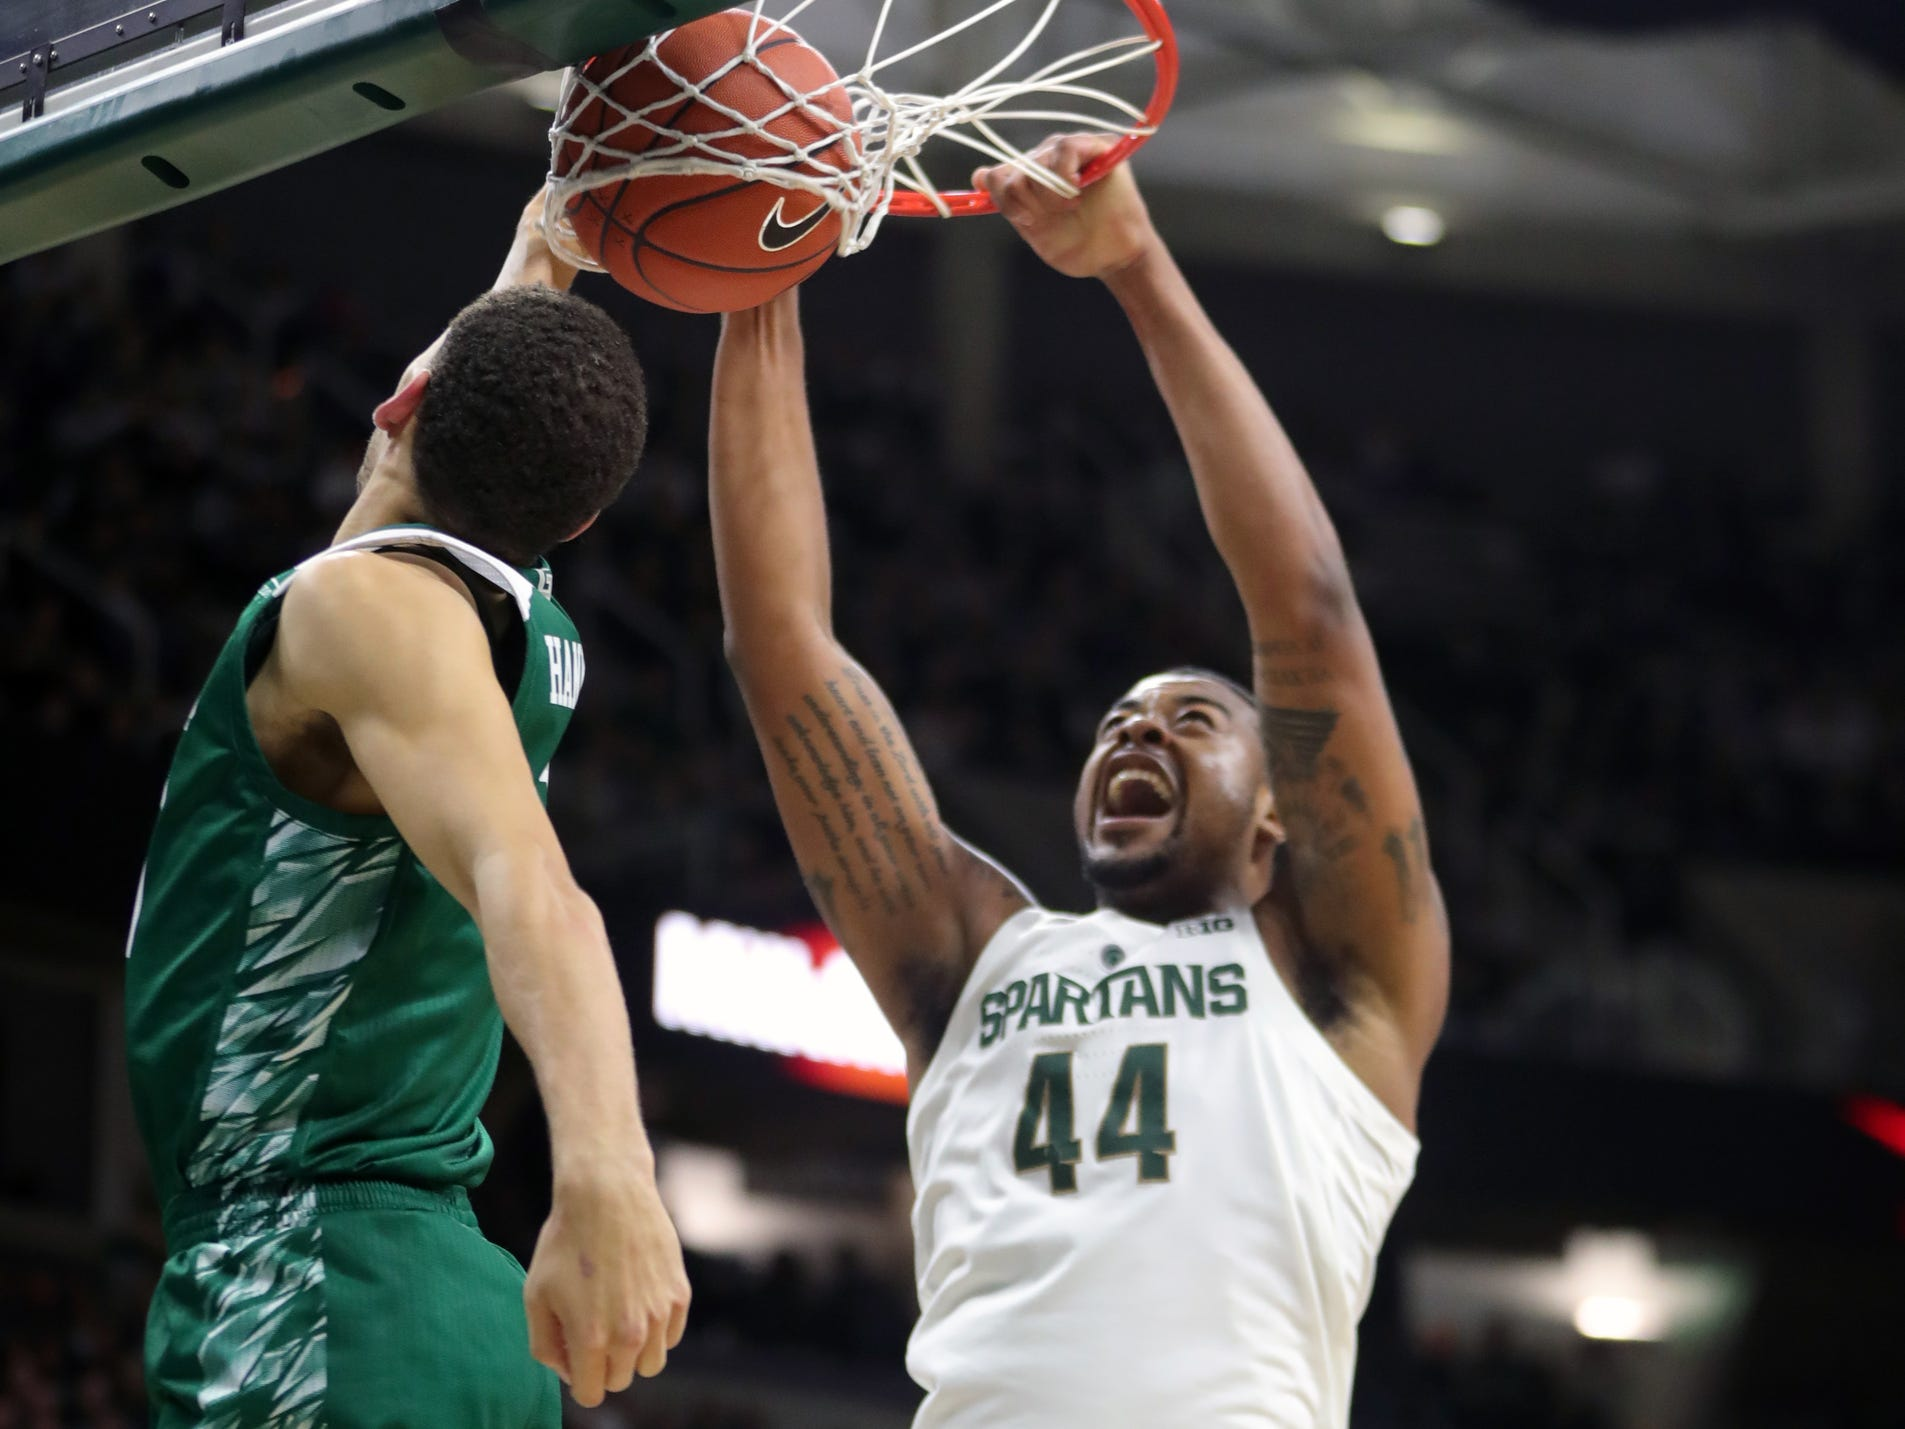 Michigan State forward Nick Ward dunks over Green Bay guard Sandy Cohen III in the first half Sunday, Dec. 16, 2018 at the Breslin Center in East Lansing.